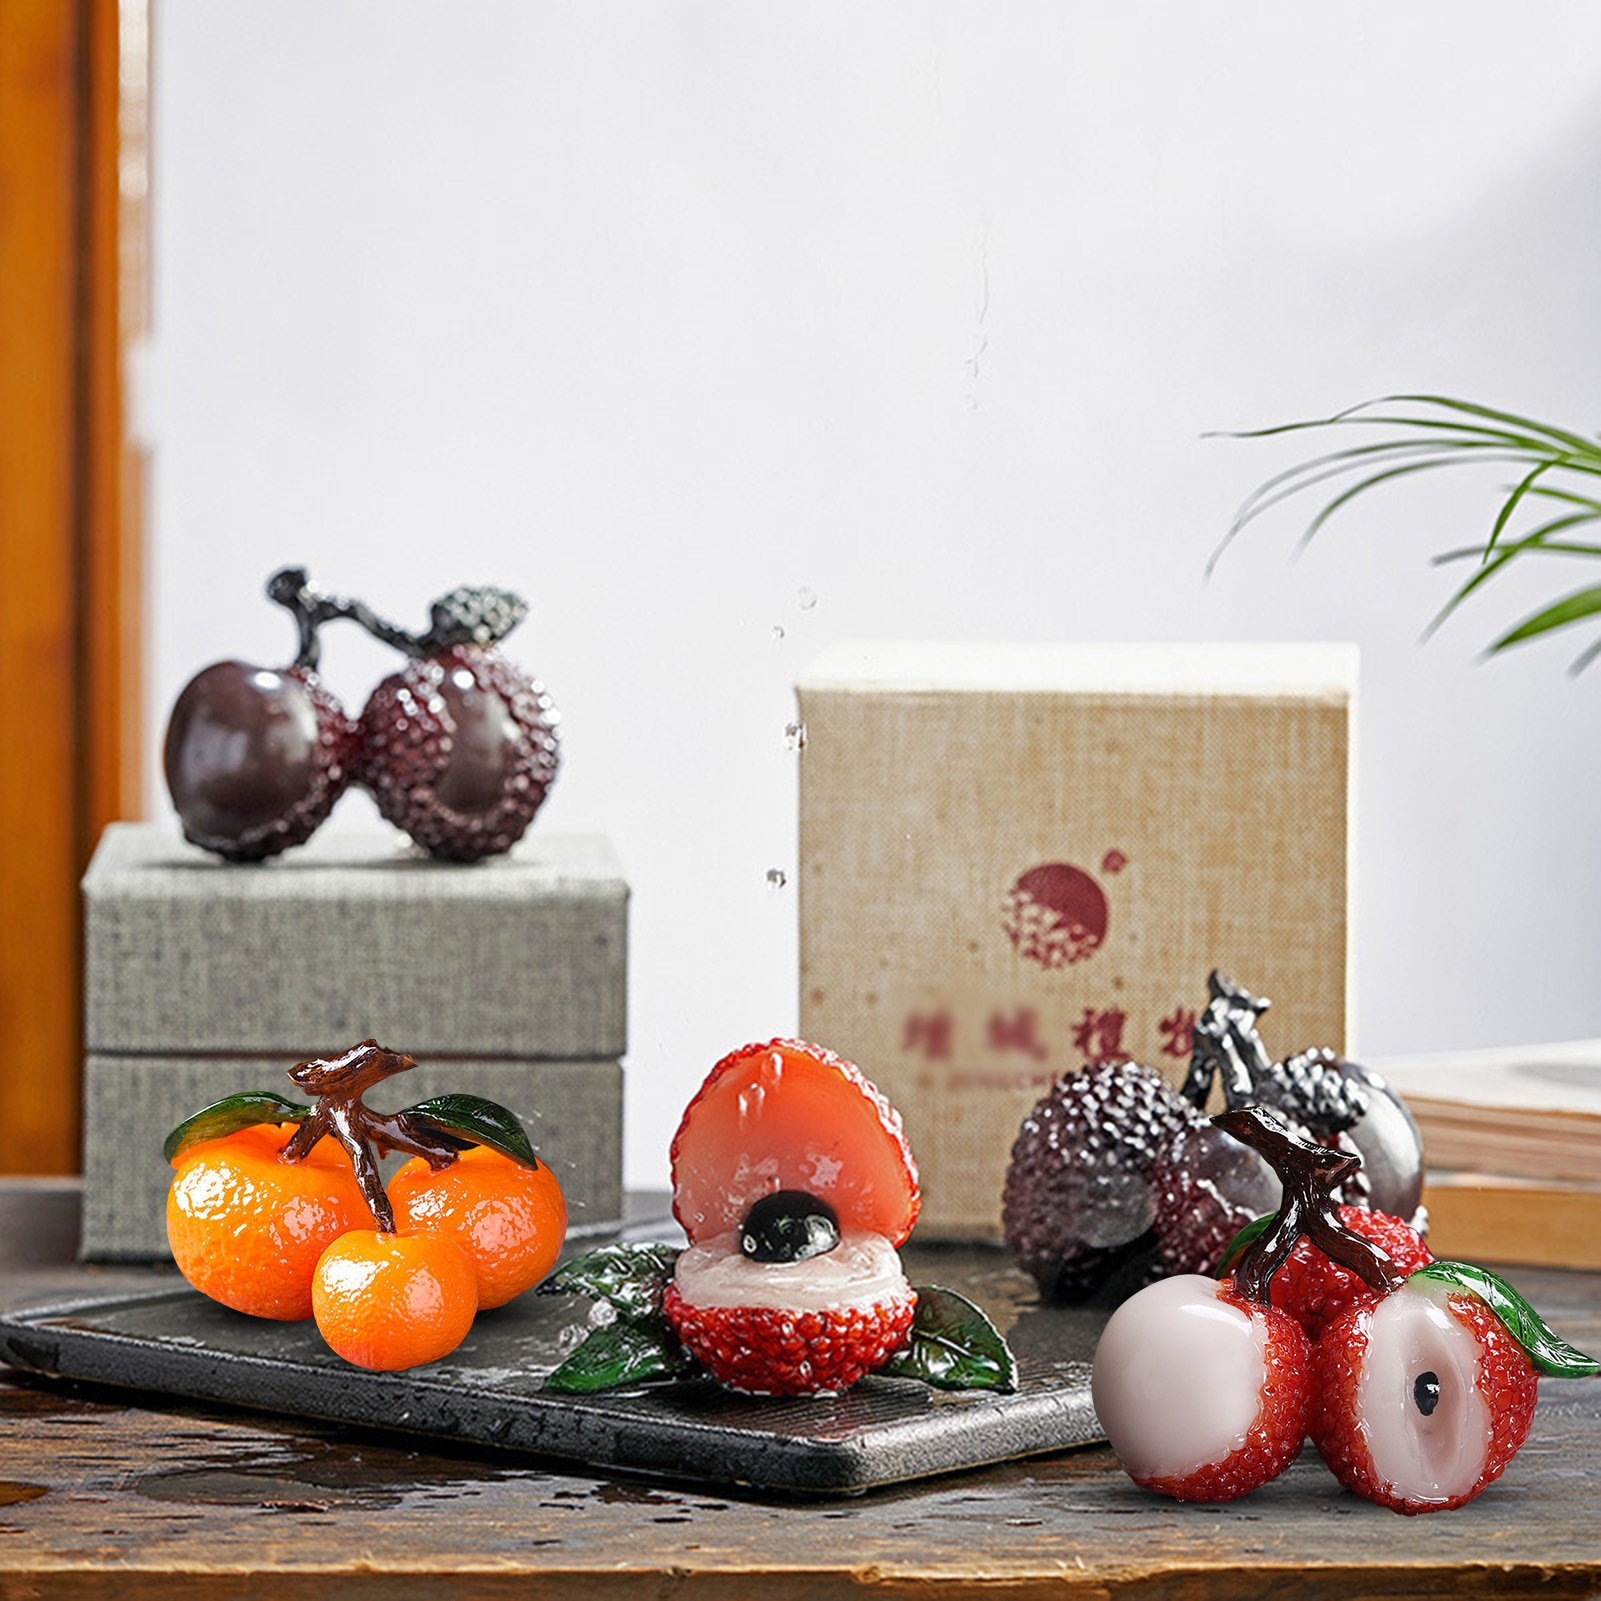 Fruit Ornament Personalized Tea Set Accessories for Gifts It will change color when it meets water lifelike Interesting Role